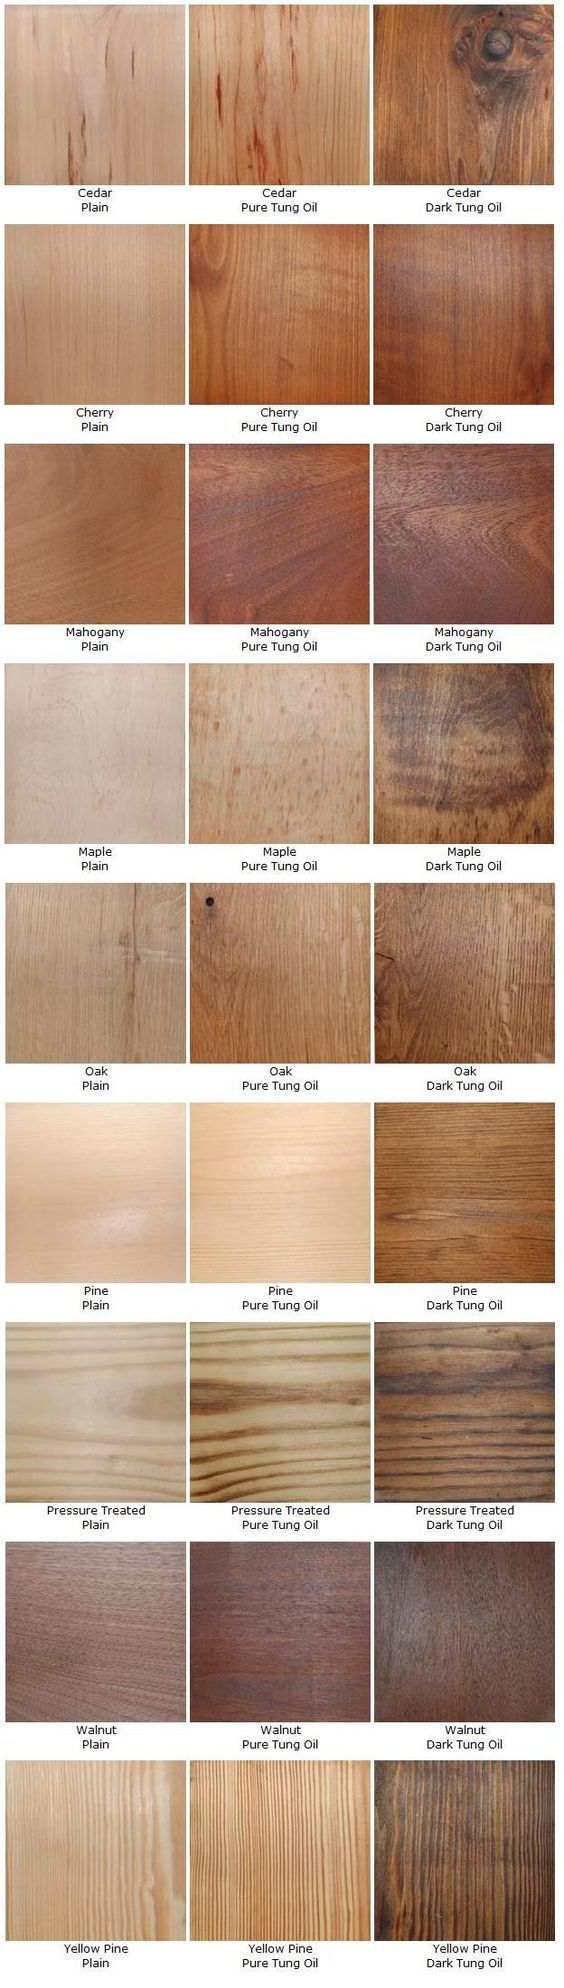 Pure vs Dark Tung Oil: